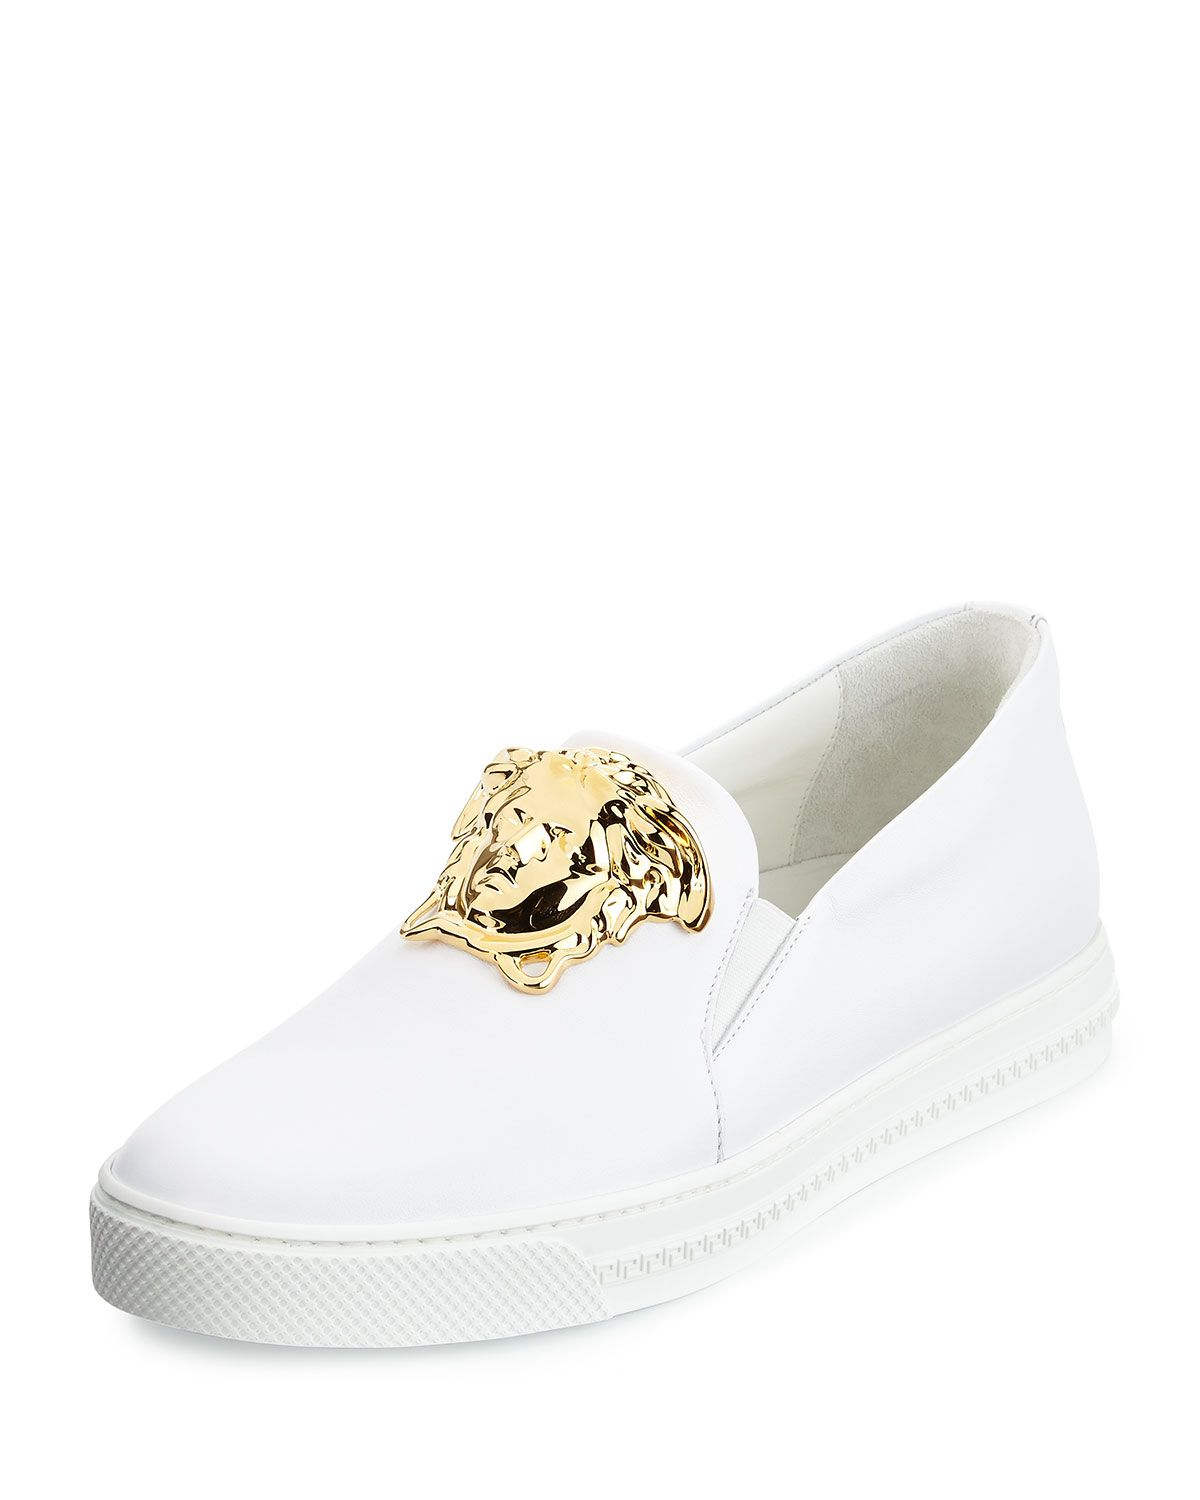 88d732b3adb4 Leather Slip-On Sneaker with Golden Medusa Head, White, Men s, Size   40EU 7US - Versace